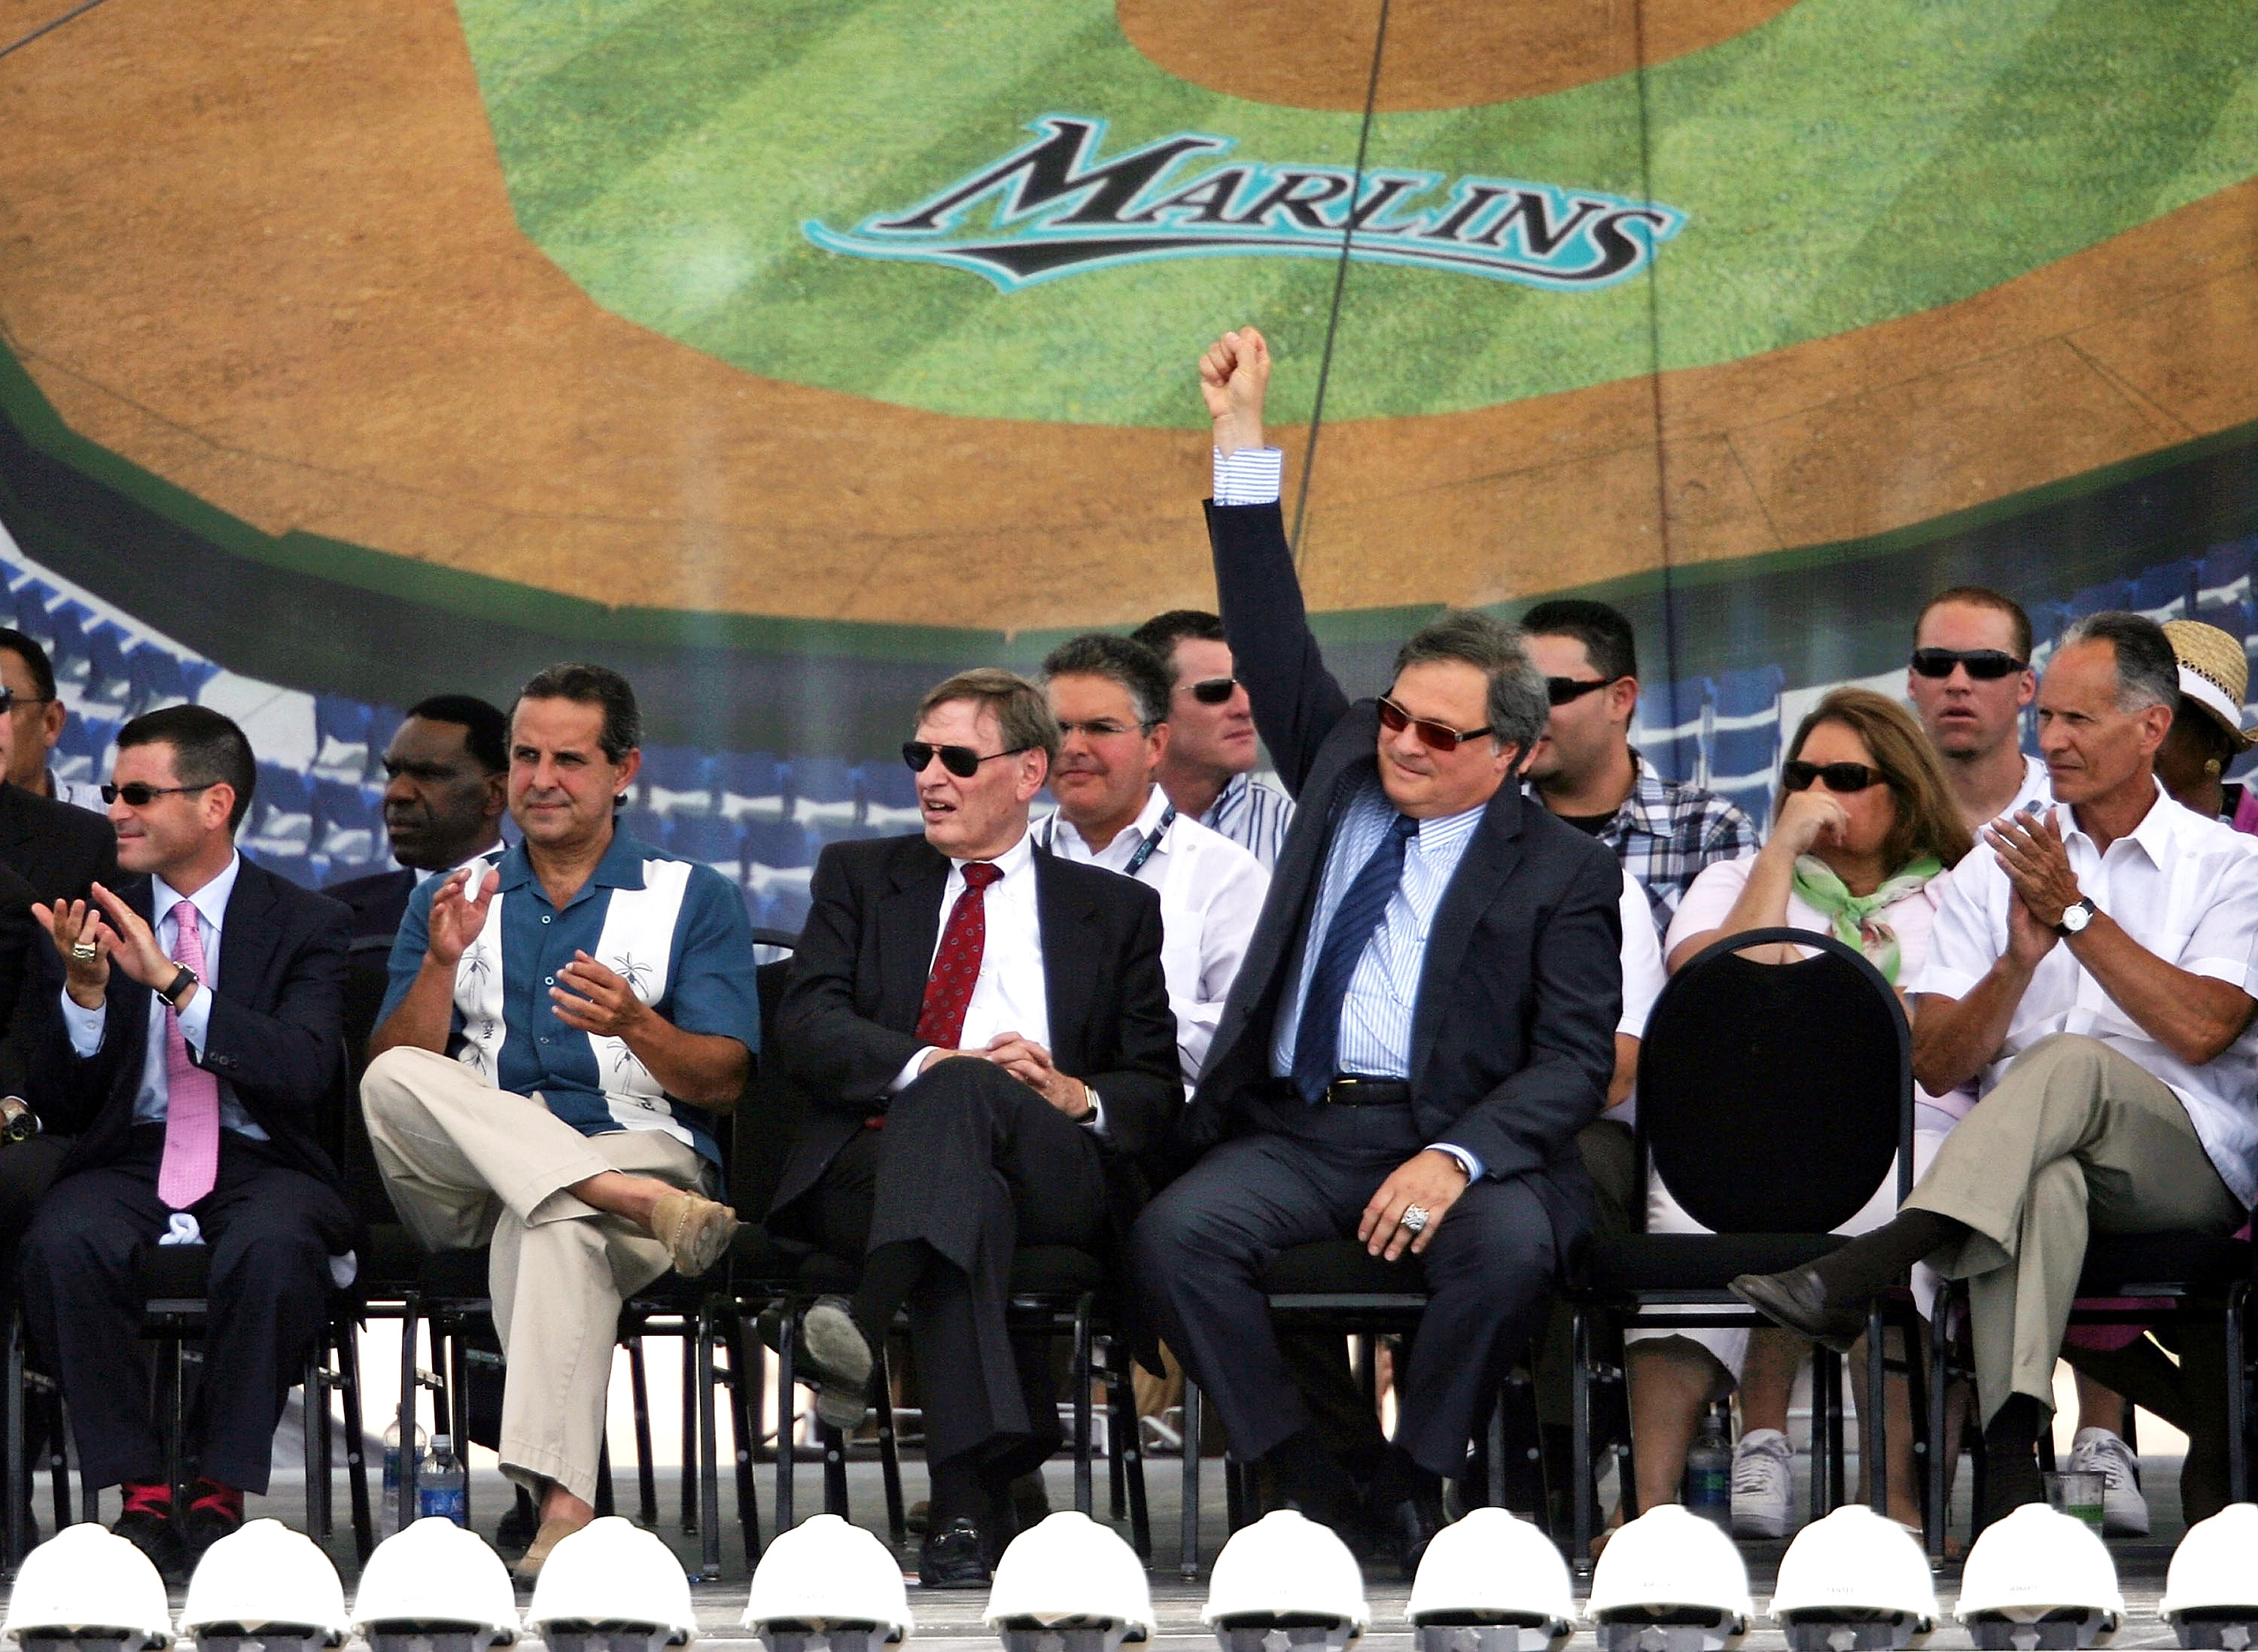 MIAMI - JULY 18:  (L-R) Florida Marlins team President David Sampson, City of Miami Mayor Manny Diaz, MLB Commisioner Bud Selig, Florida Marlins owner Jeffrey Loria and Miami-Dade County Mayor Carlos Alvarez attend the groundbreaking ceremony for the Flor